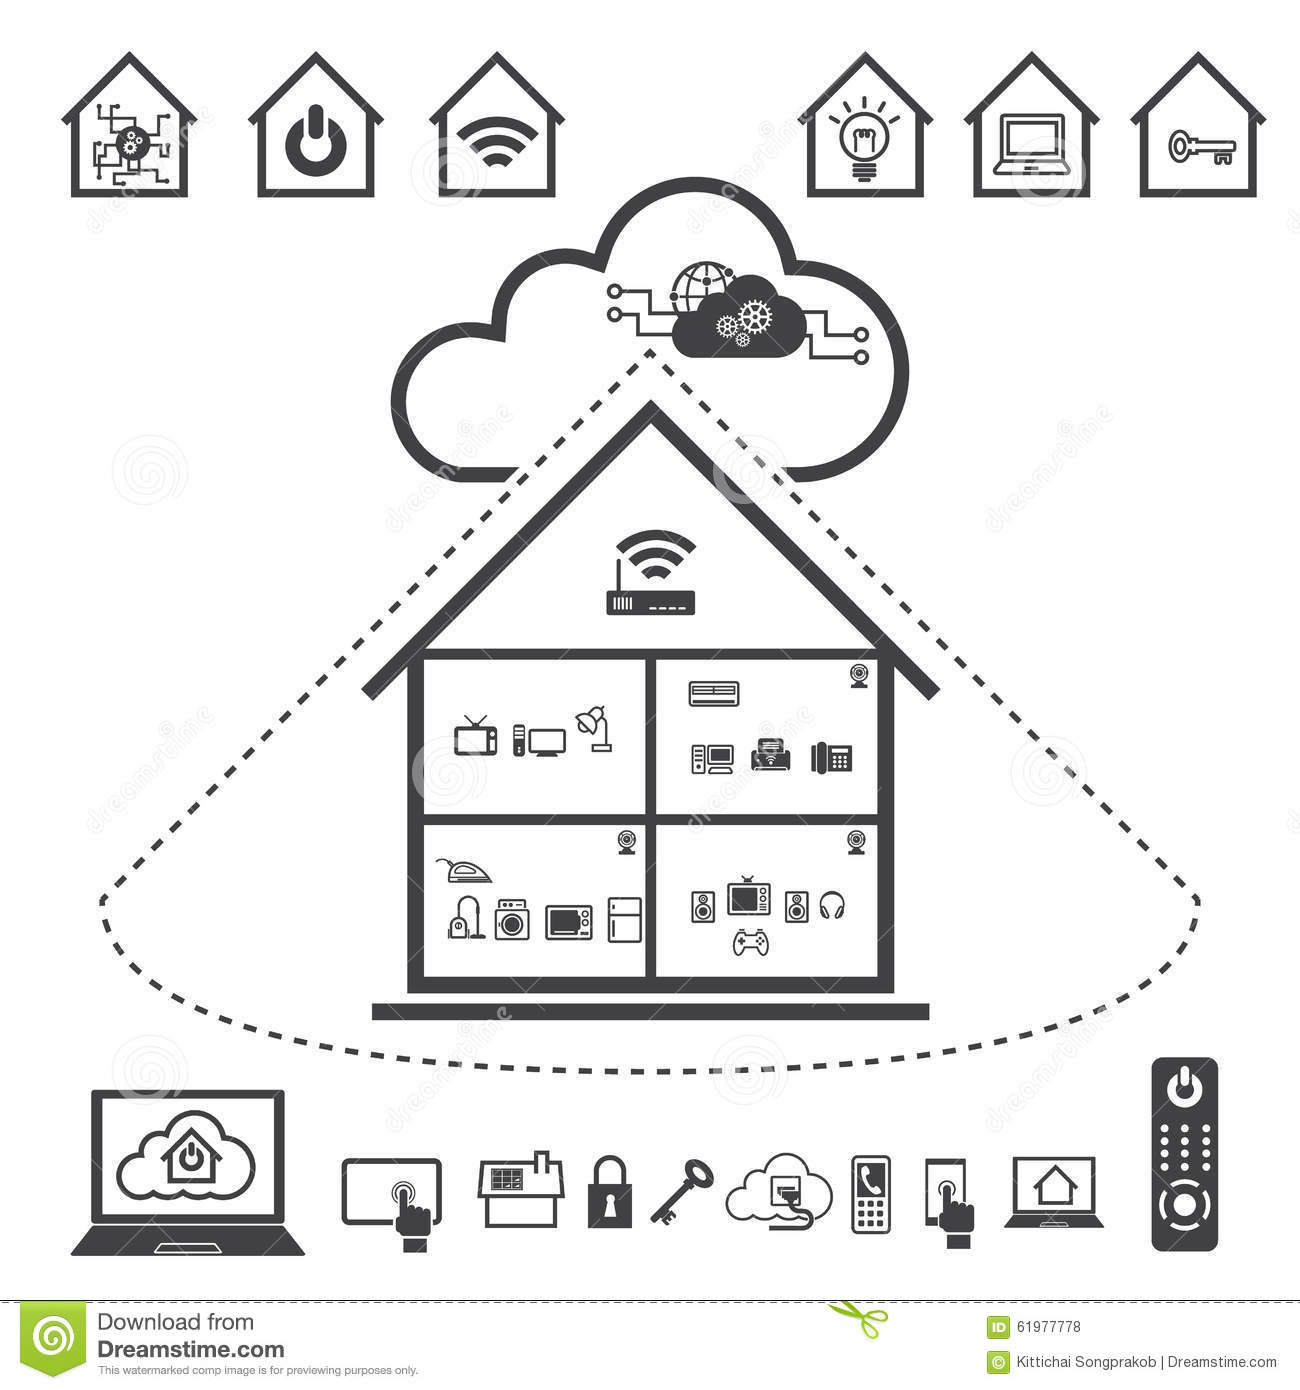 Devices Control With Cloud Computing, Cloud Computing